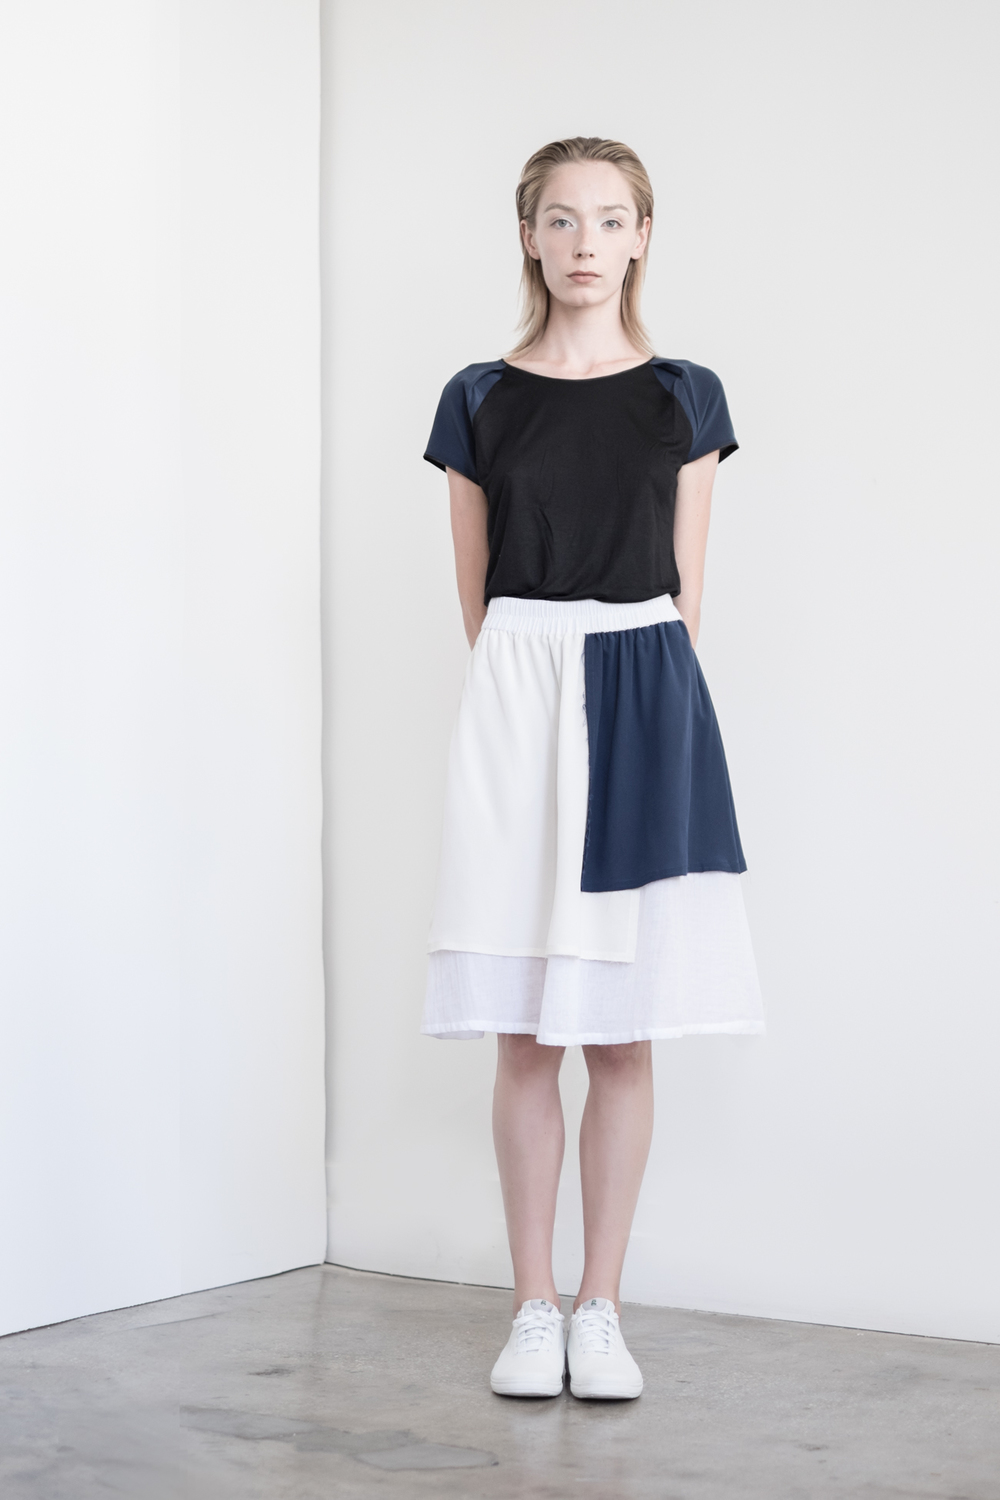 LOOK 35   TOP:   2285  / Noir   -     Short sleeve silk & viscose color block T-shirt.   BOTTOM:   2293  / Blanc Combo -     Curator skirt in silk crepe de chine color block paneling.